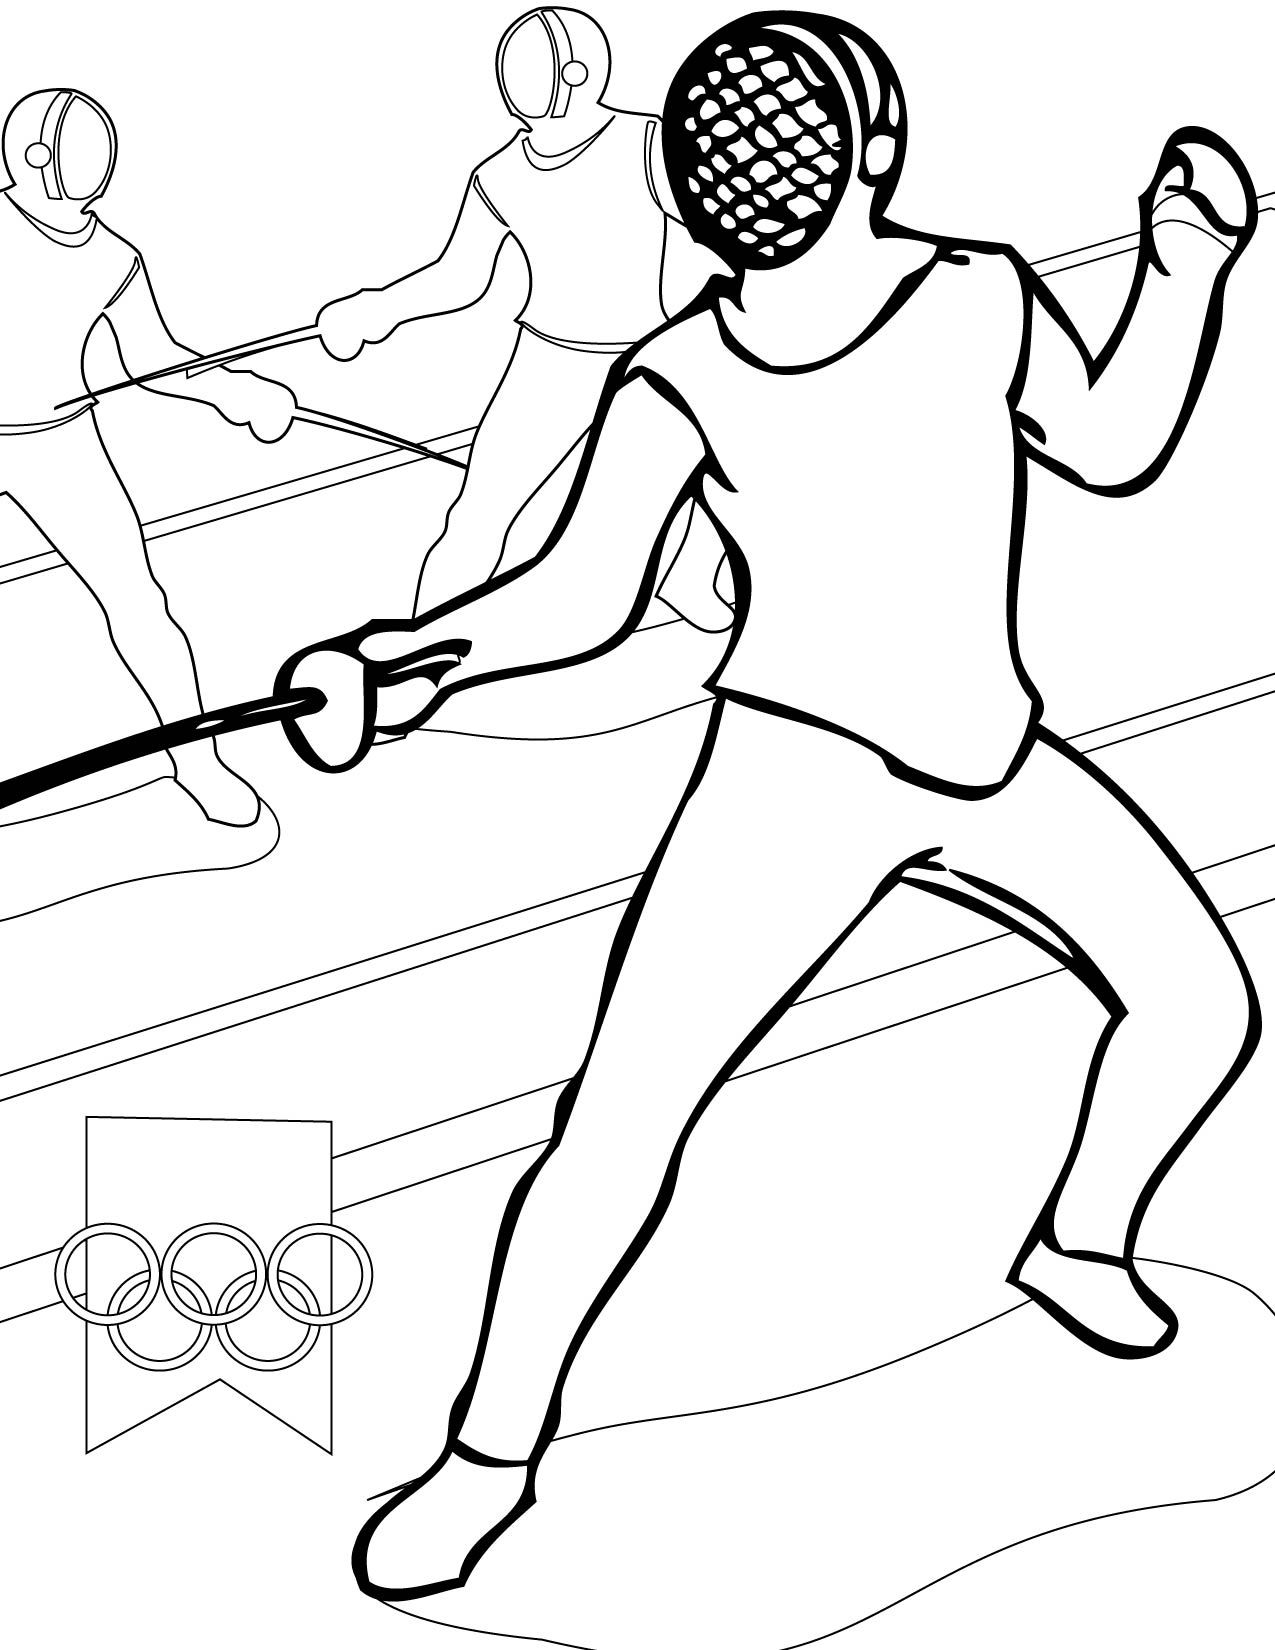 fencing en garde pinterest olympic sports and olympics